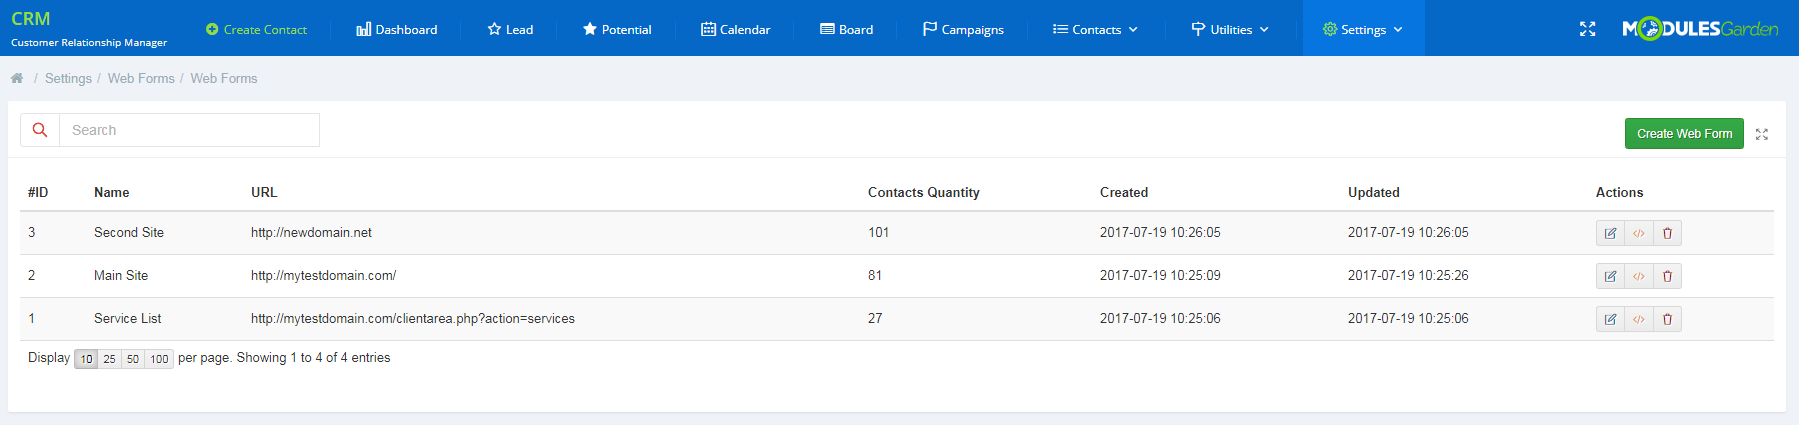 CRM For WHMCS: Screen 27